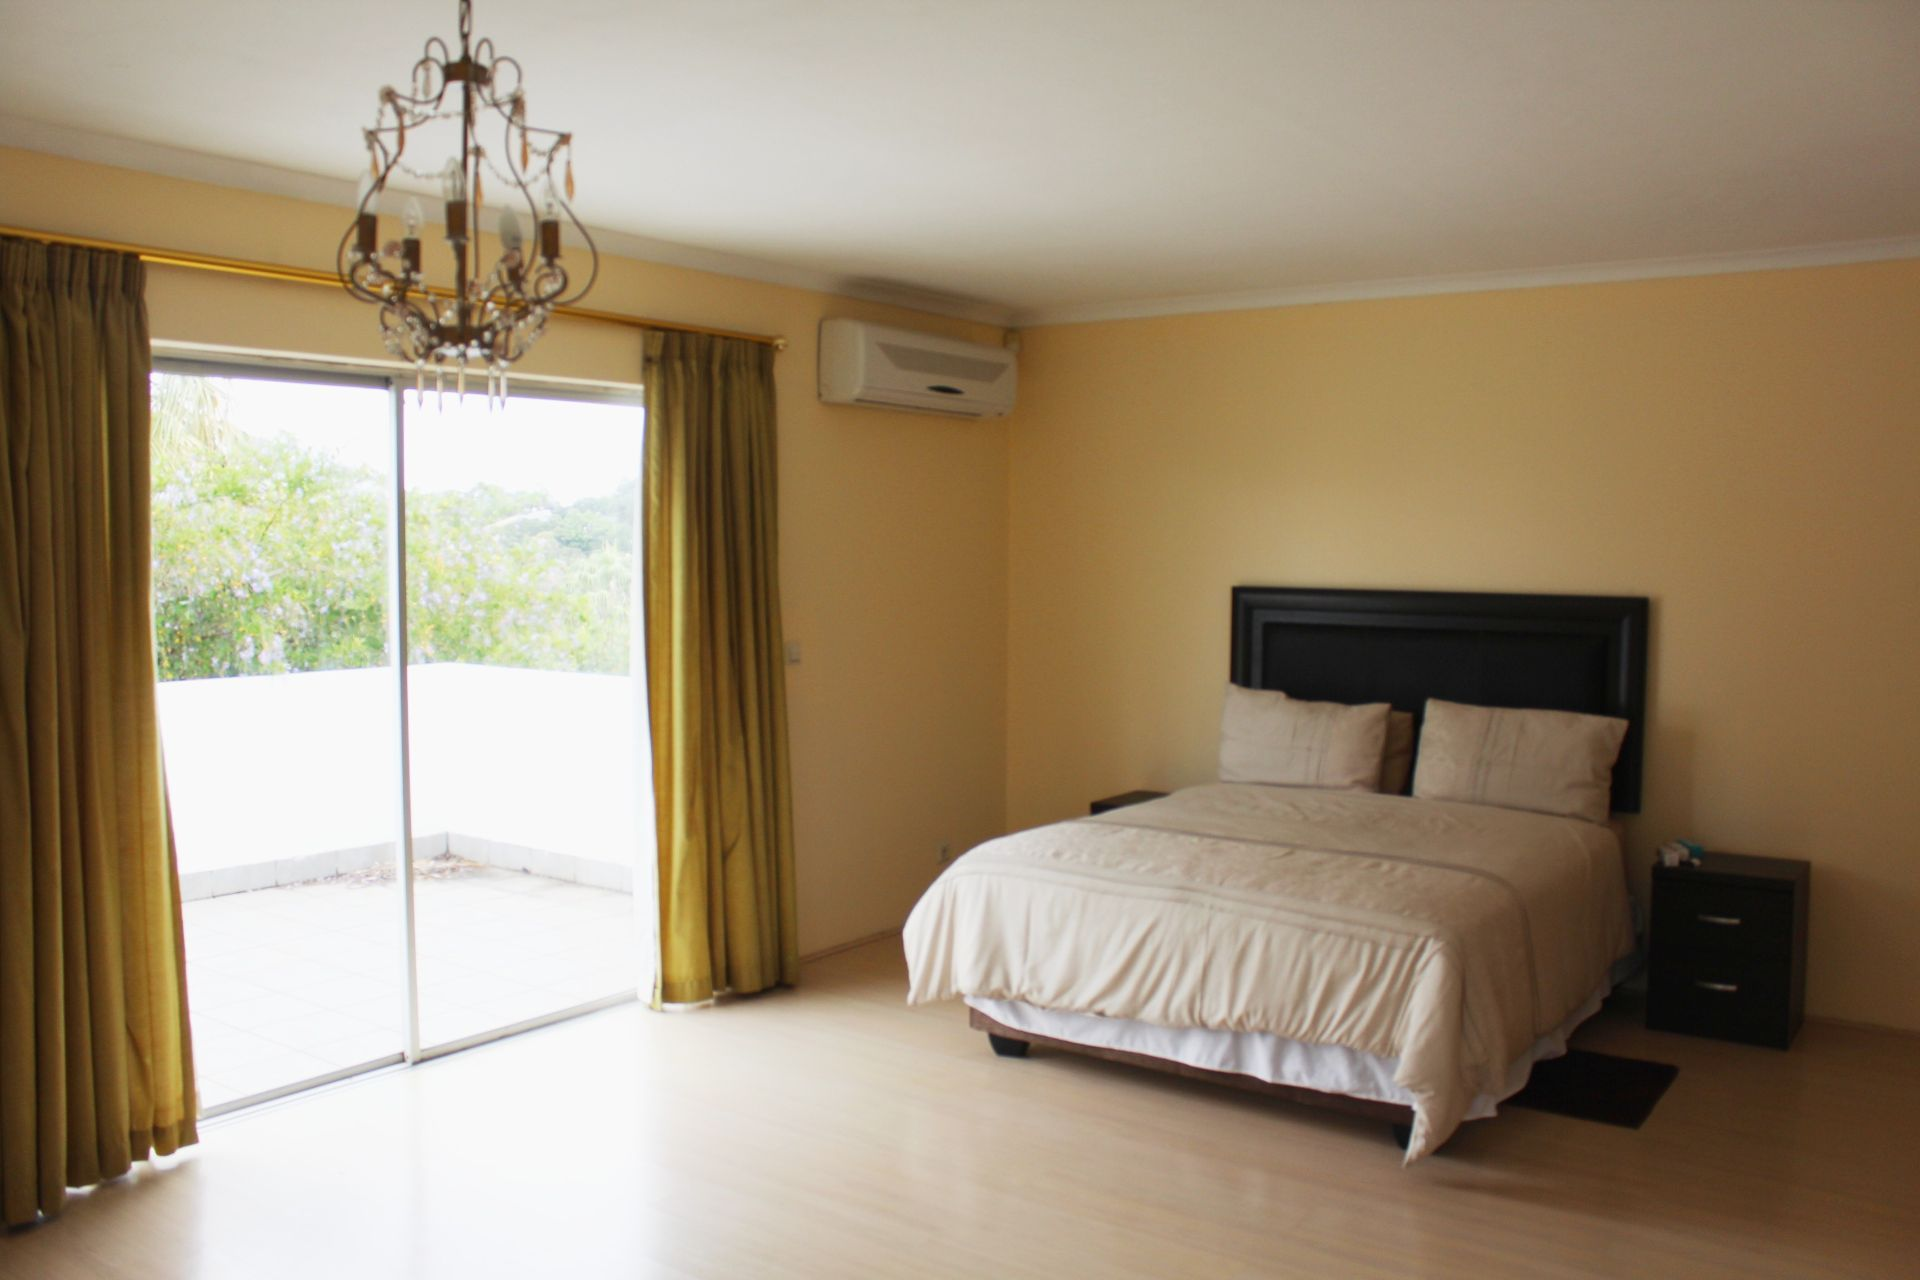 Vincent Heights property for sale. Ref No: 13459972. Picture no 13